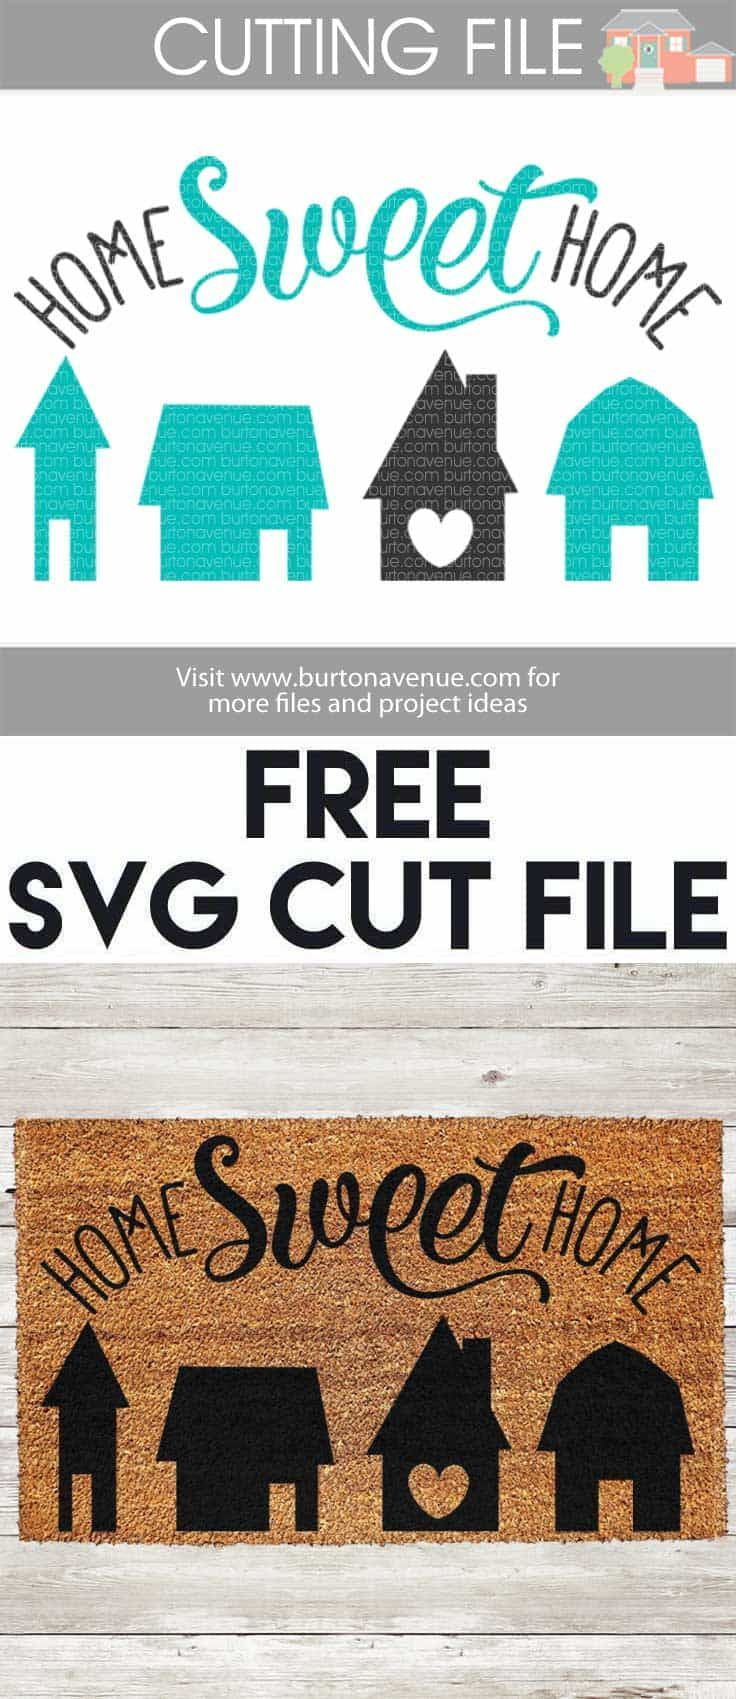 Pin on Free SVG Files from Burton Avenue. Works with